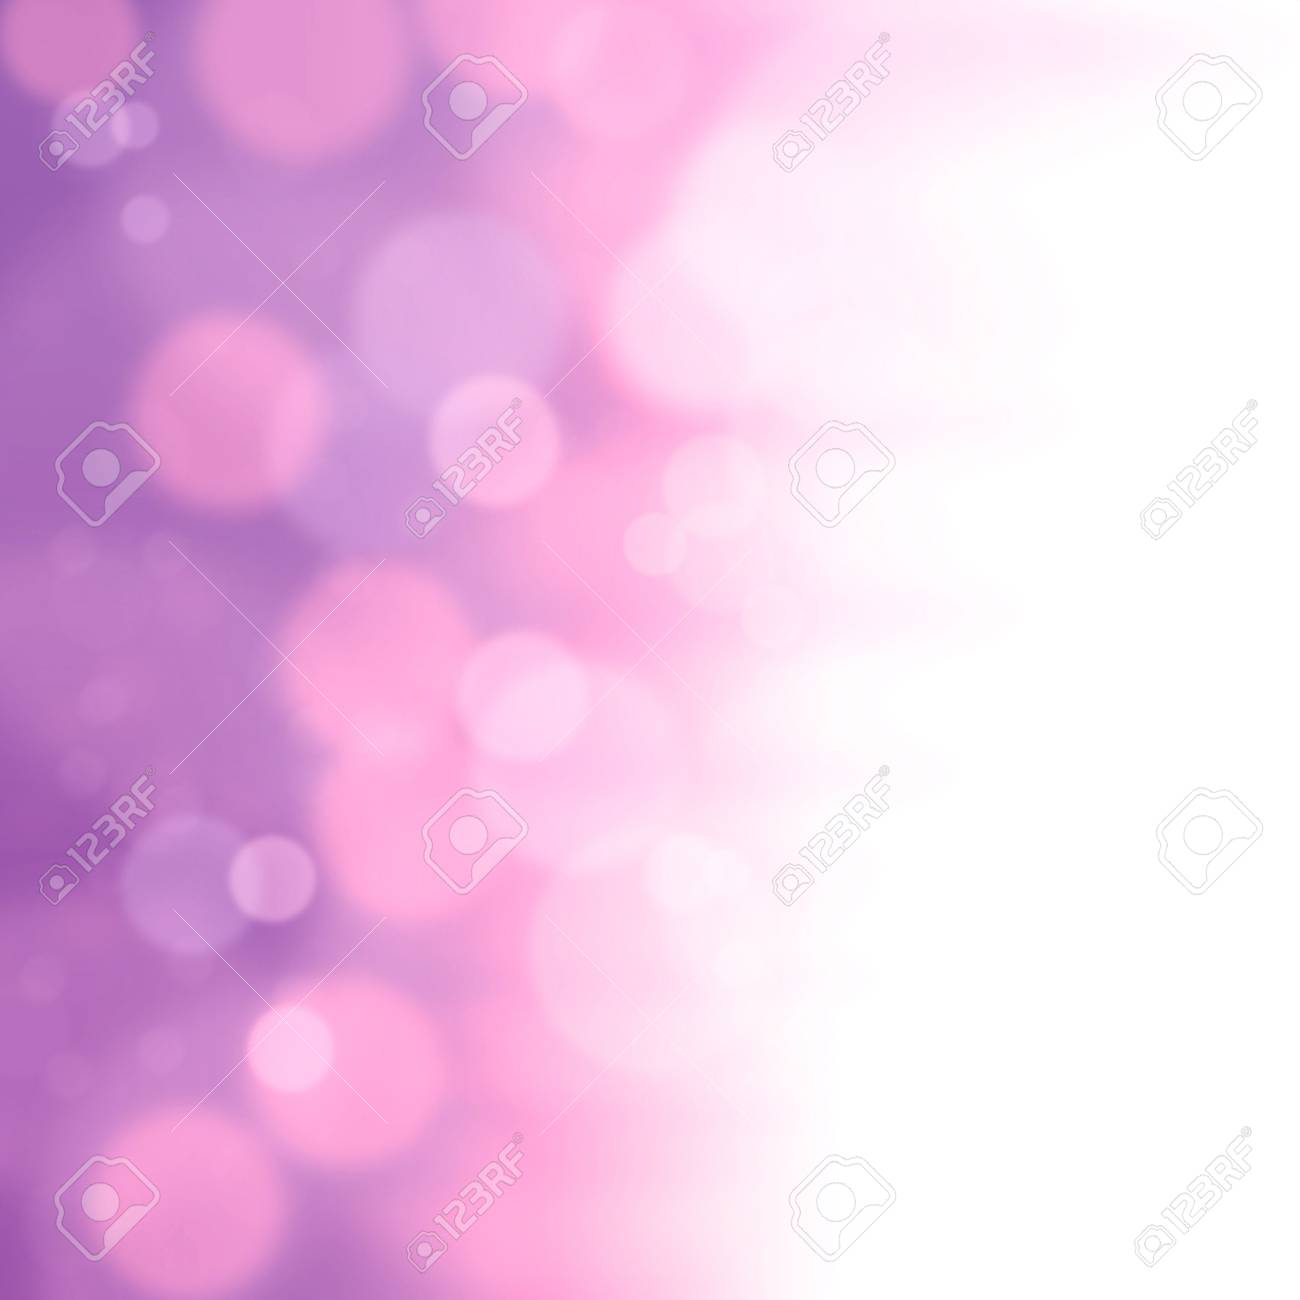 background of light Stock Photo - 5301649